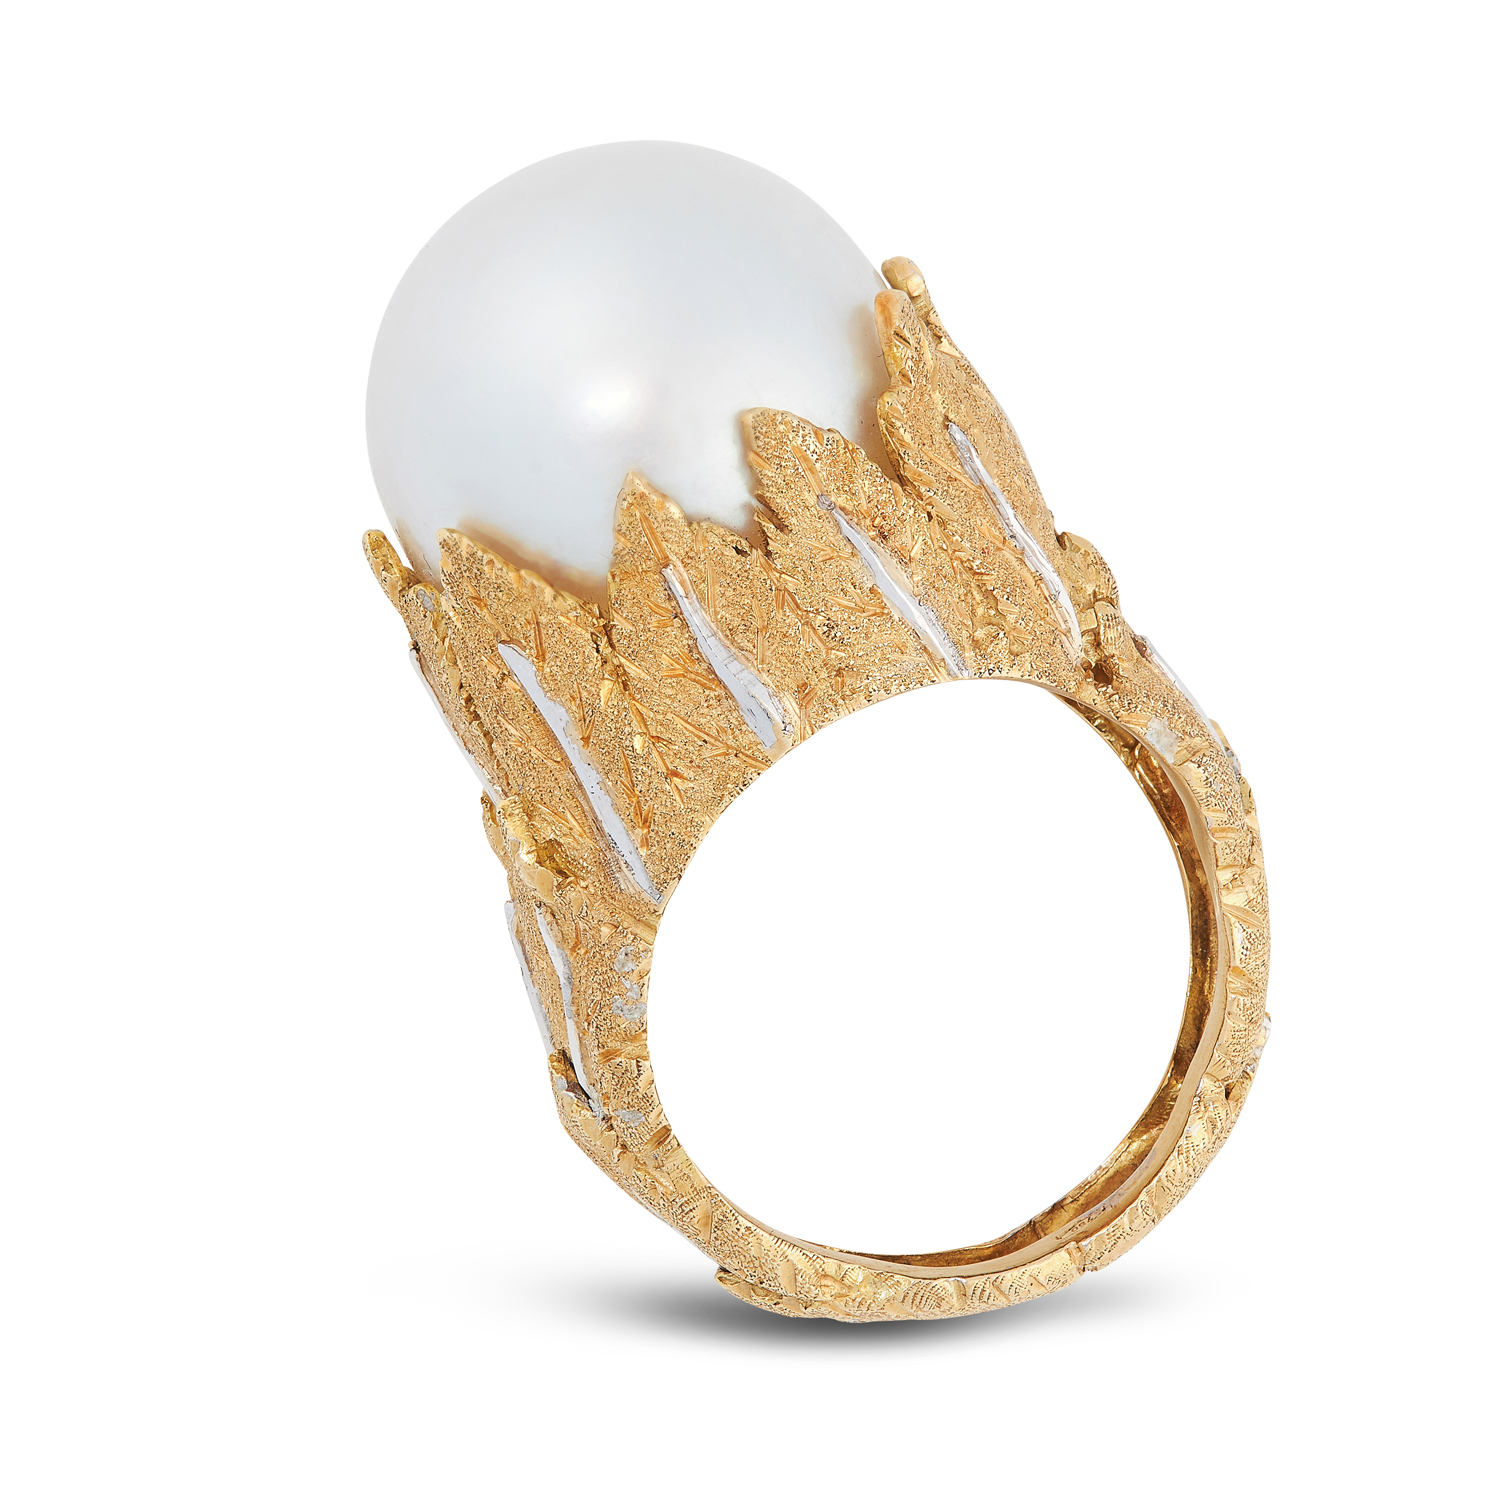 A VINTAGE PEARL DRESS RING, BUCCELLATI in 18ct yellow gold, set with a cultured pearl of 16.0mm, - Image 2 of 2